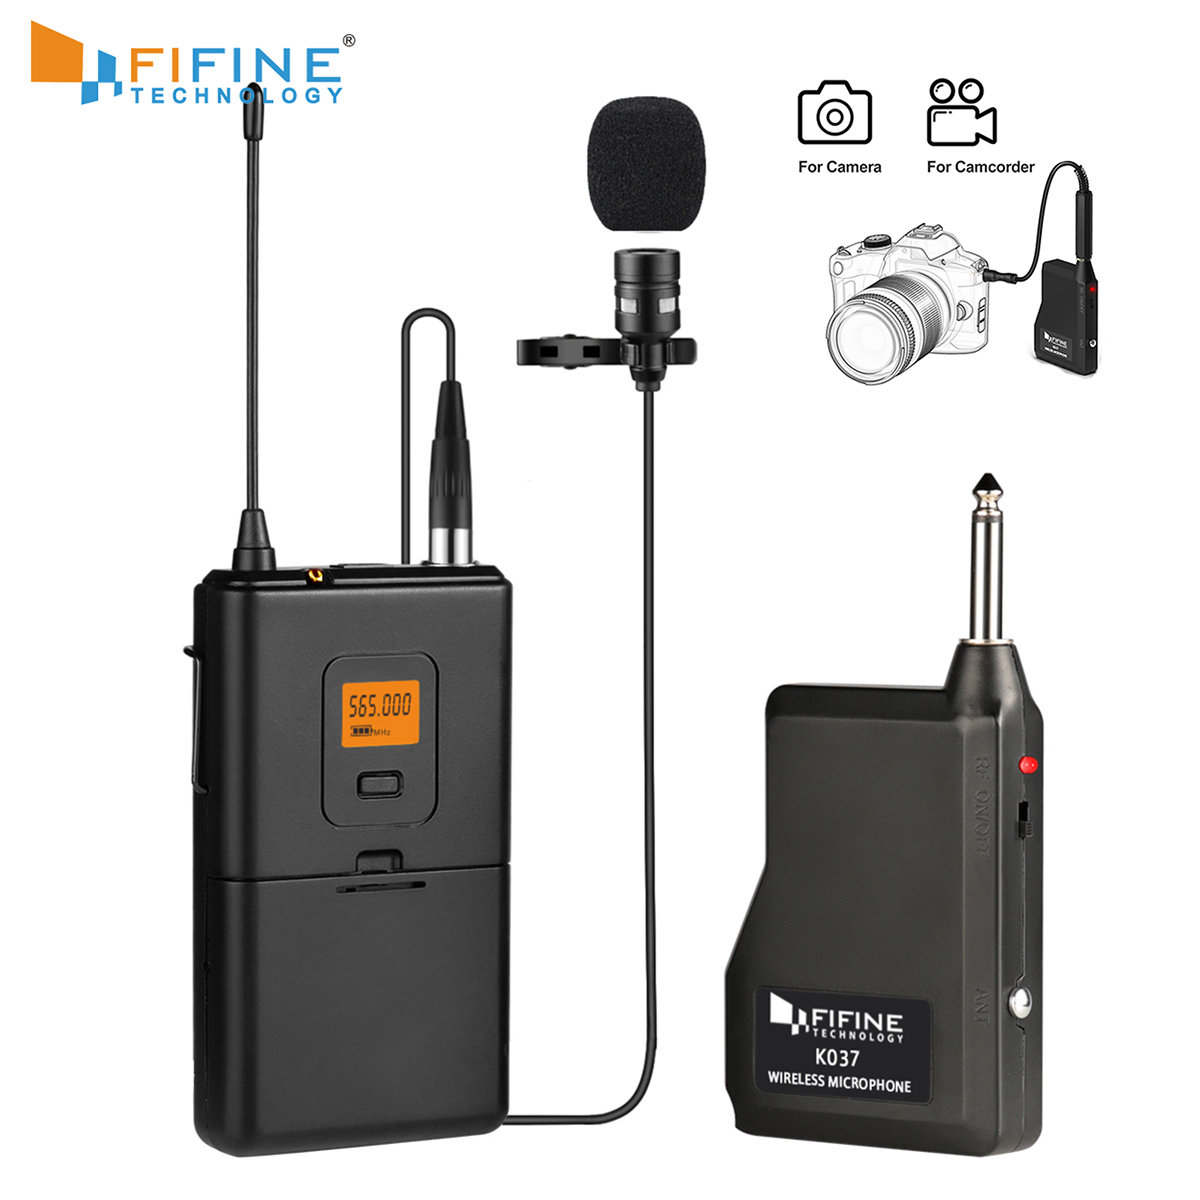 fifine 20 channel uhf wireless lavalier lapel microphone system with bodypack transmitter lapel. Black Bedroom Furniture Sets. Home Design Ideas